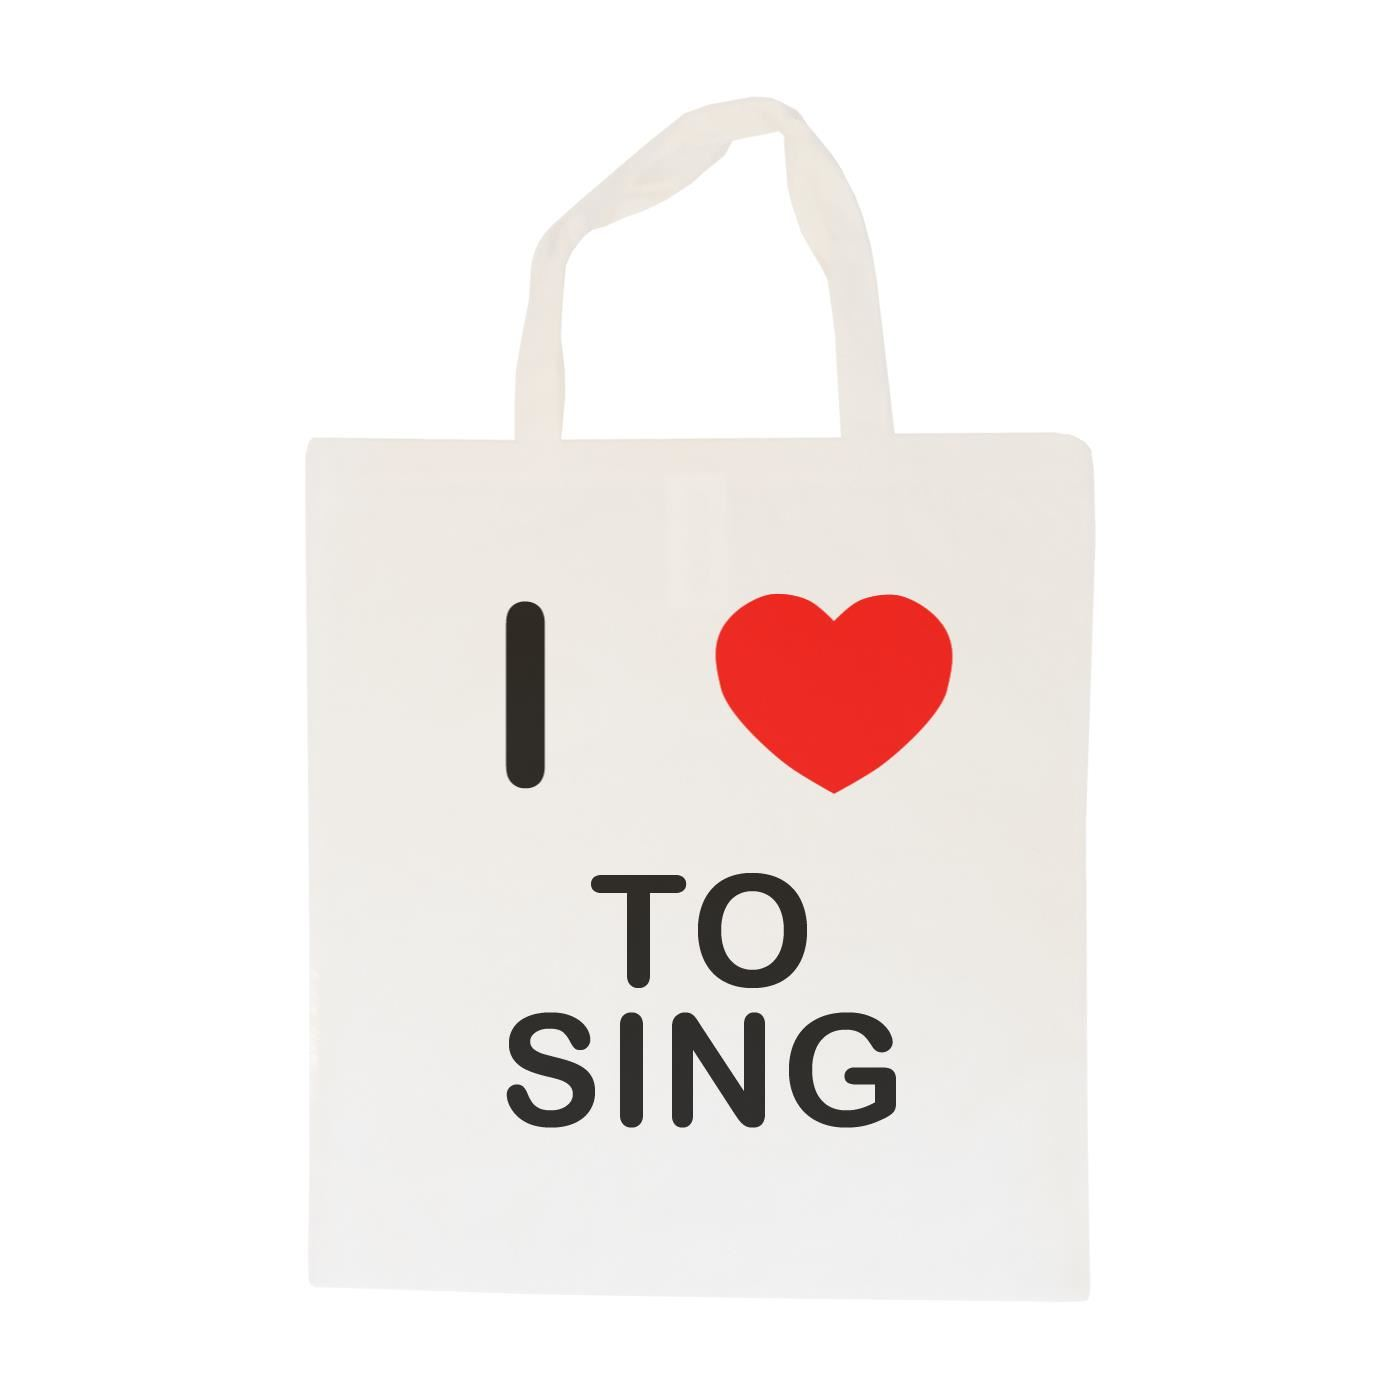 I Love To Sing - Cotton Bag | Size choice Tote, Shopper or Sling